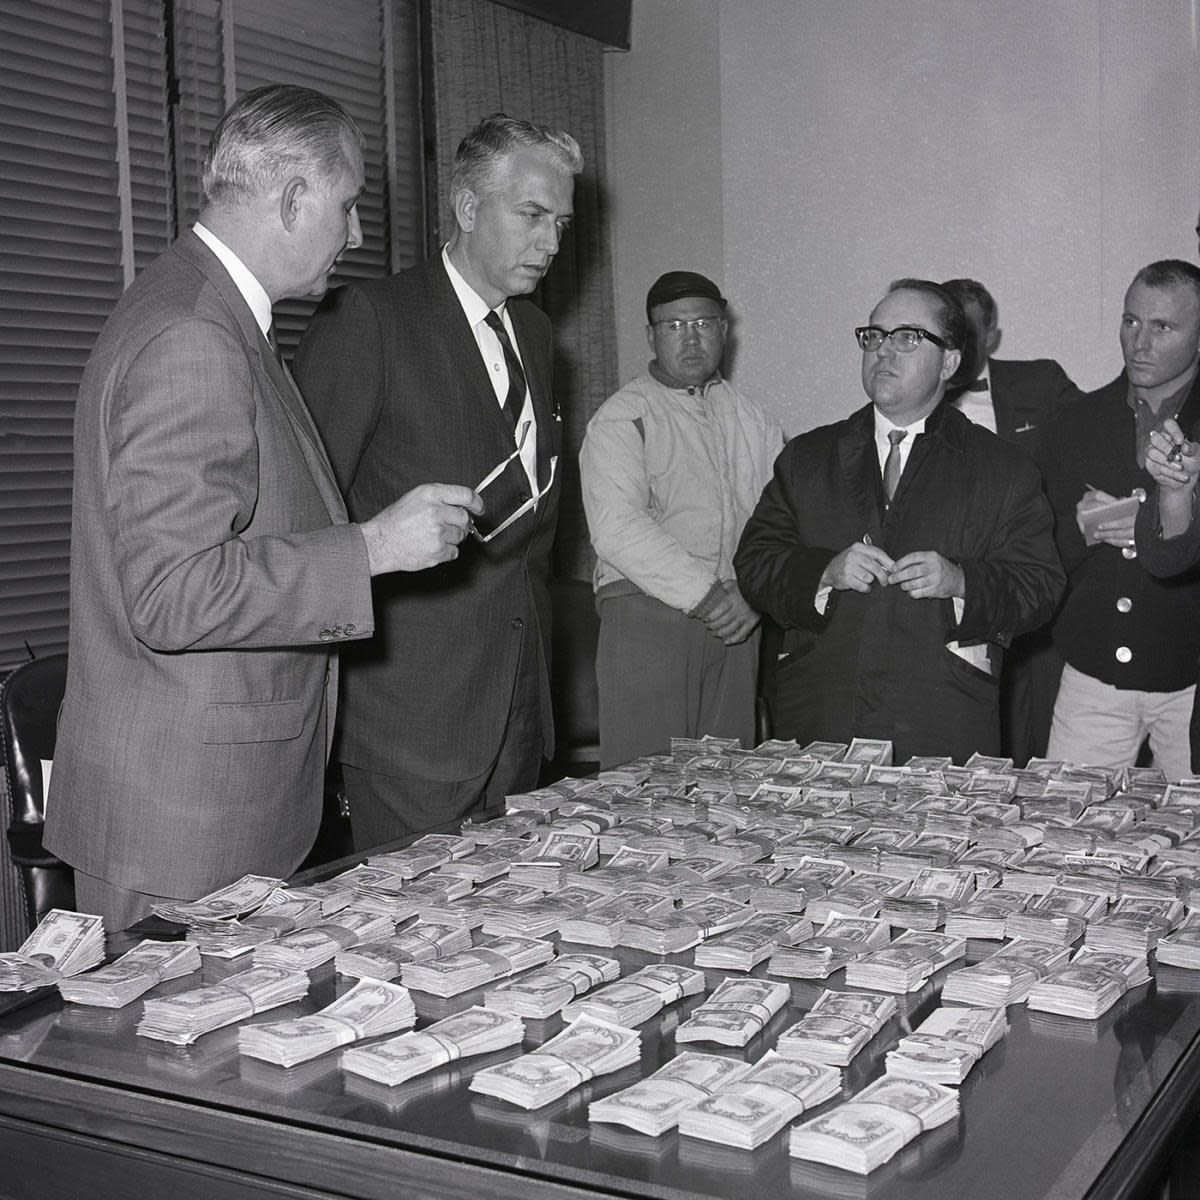 Chief FBI agent William G. Simons of Los Angeles and FBI Assistant Director Joseph Casper show newsmen the money recovered with the capture of three men in connection with the Frank Sinatra, Jr. kidnapping. (Credit: Bettmann Archive/Getty Images)